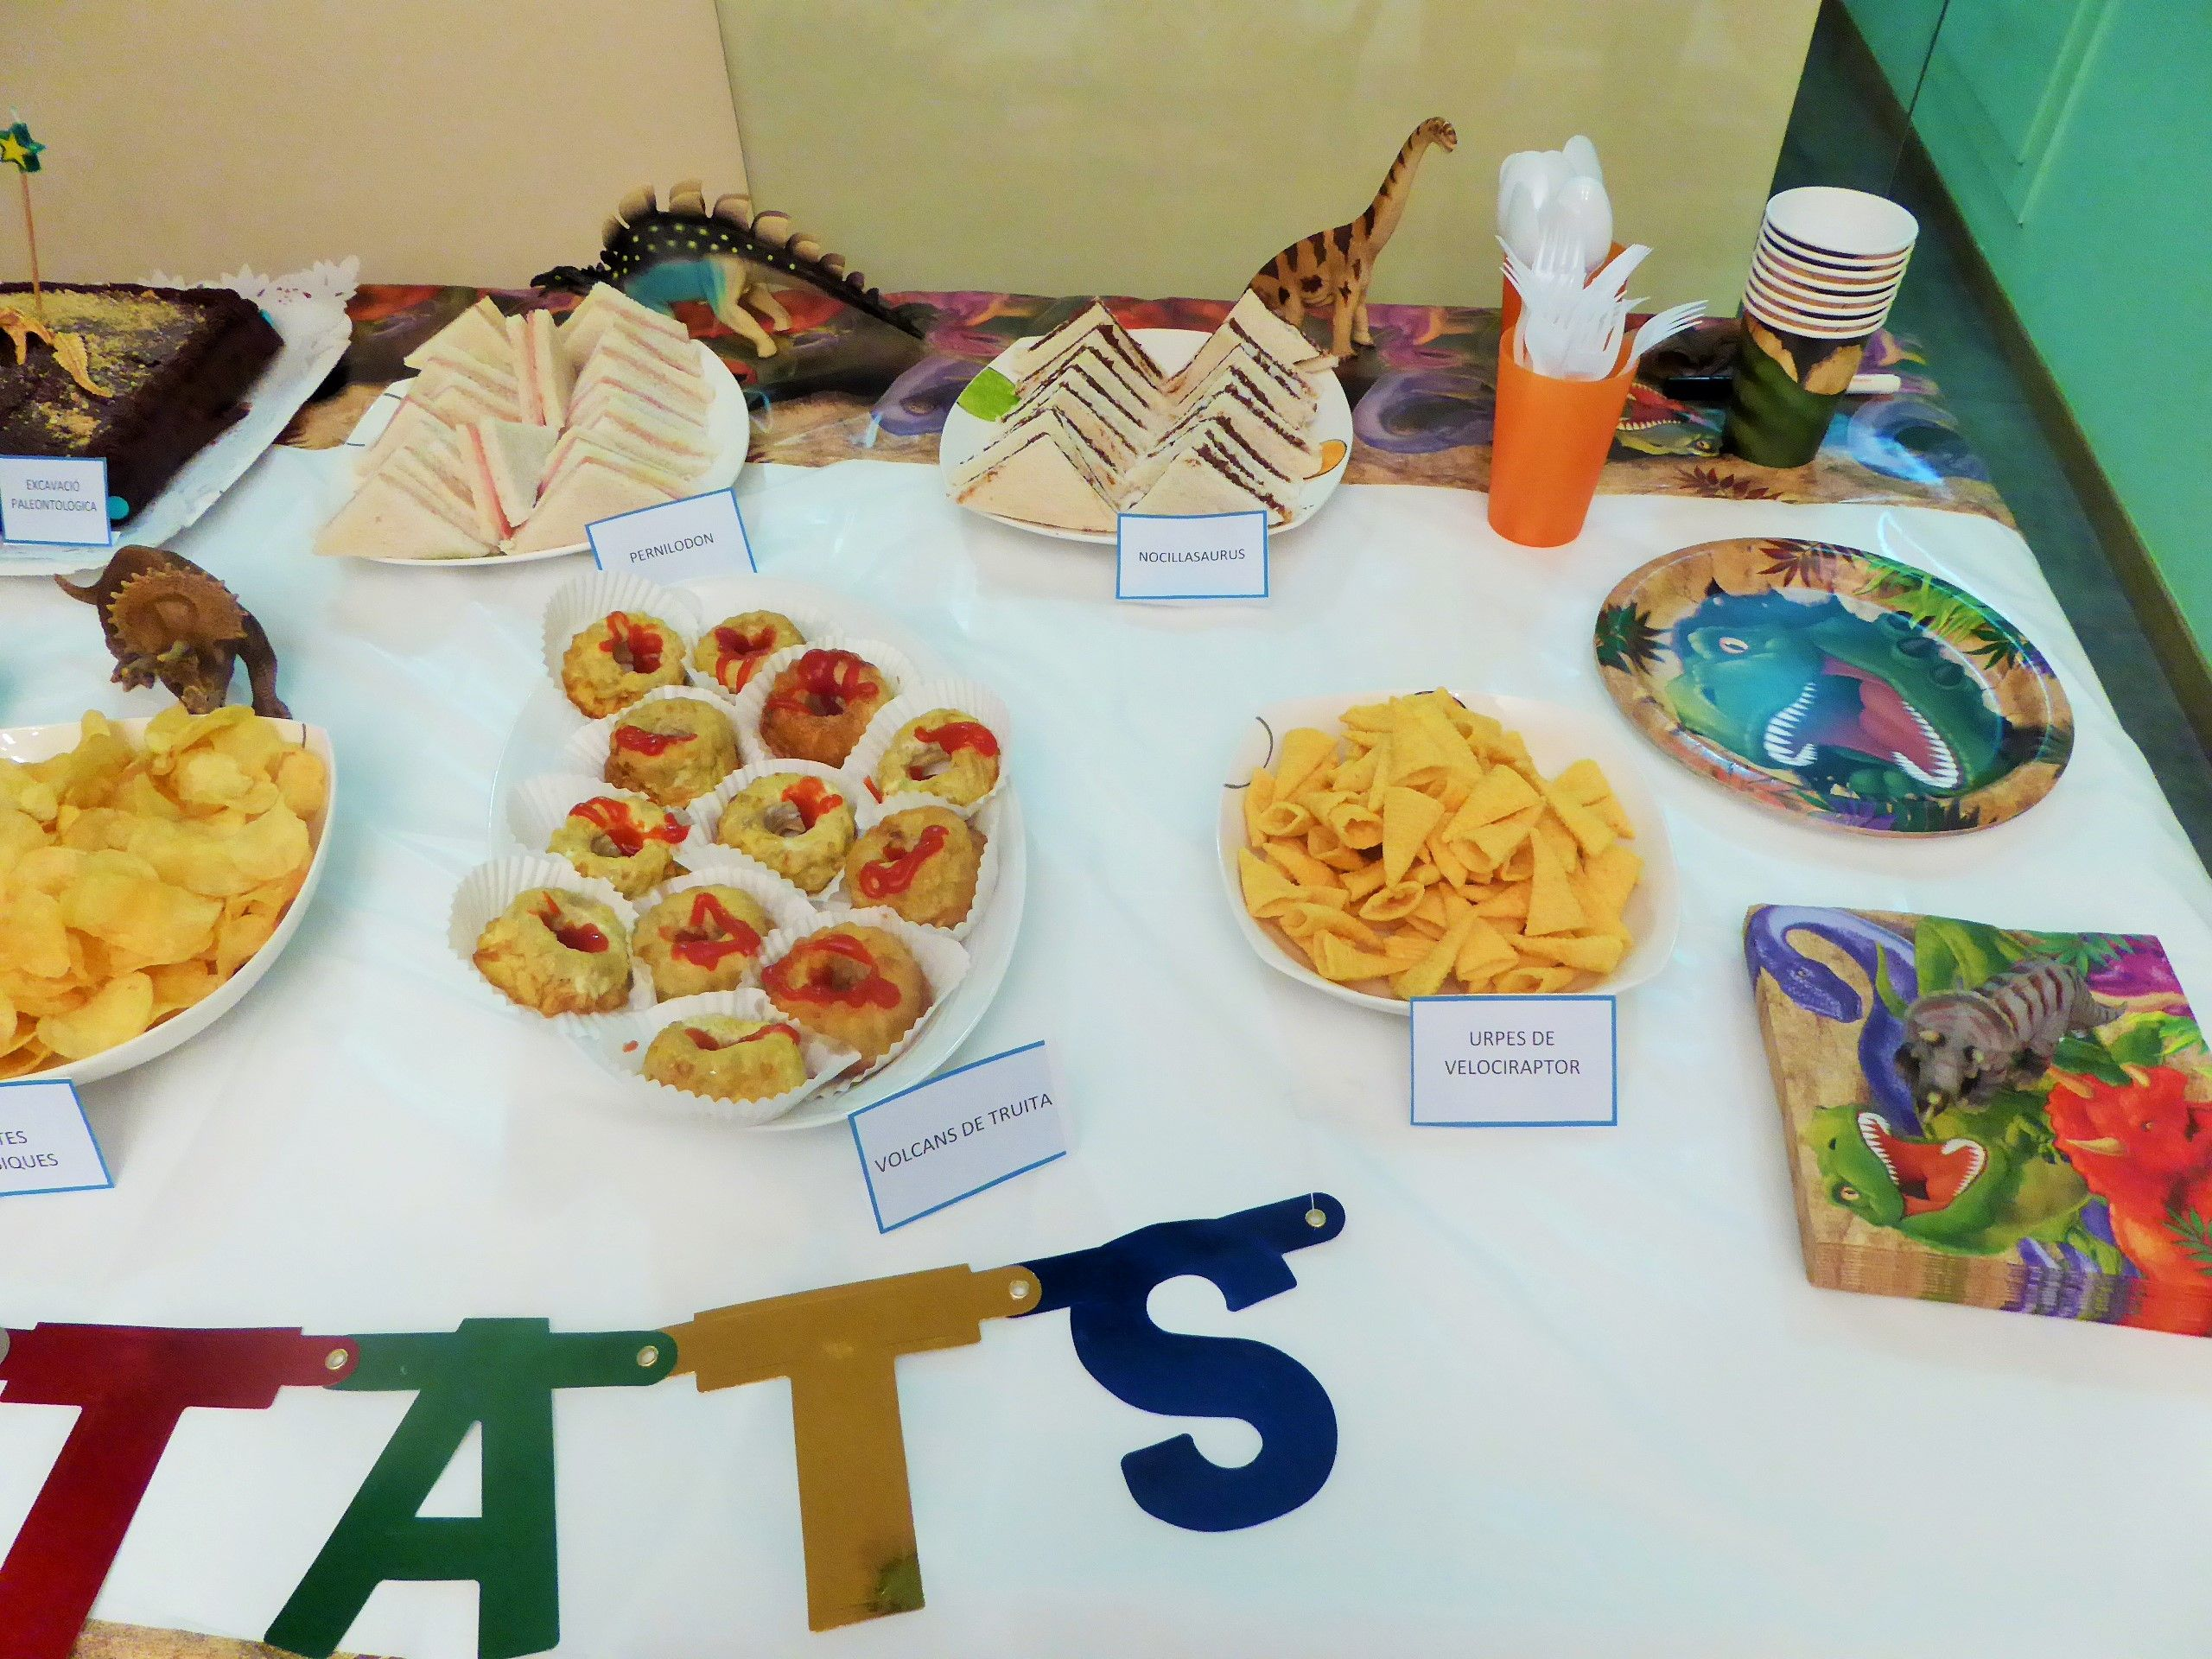 Our very own dinoparty: Table detail with velocirraptor claws, omelette volcanos, nutellasaurus and hamsaurus sandwitches